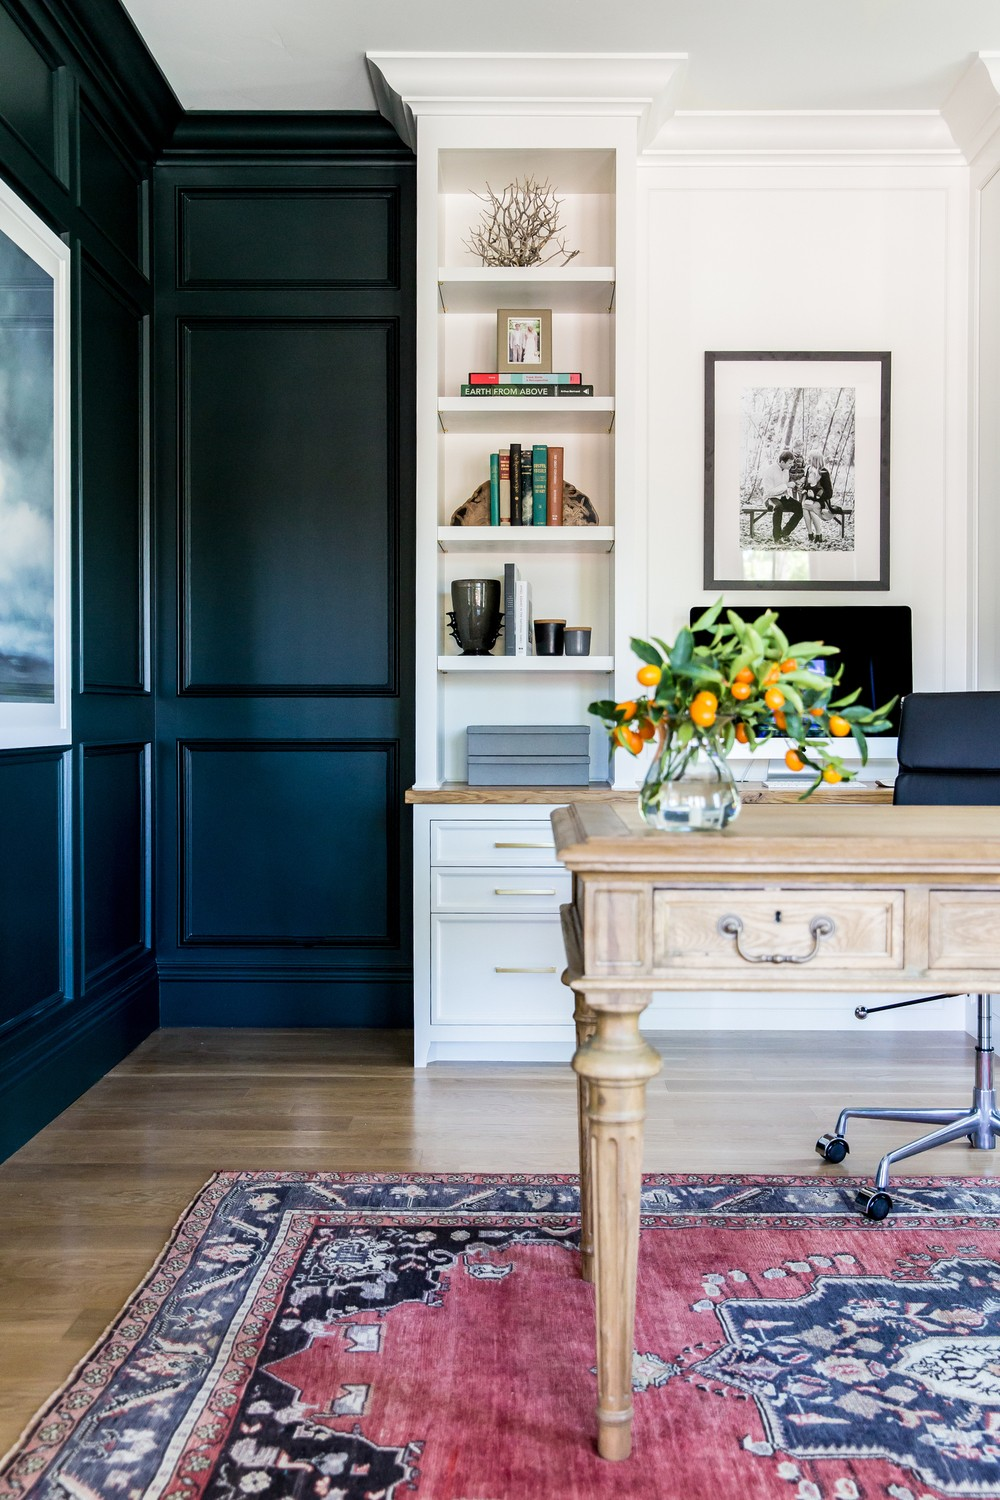 Modern+office+with+bold+color+and+built-in+cabinets.jpg